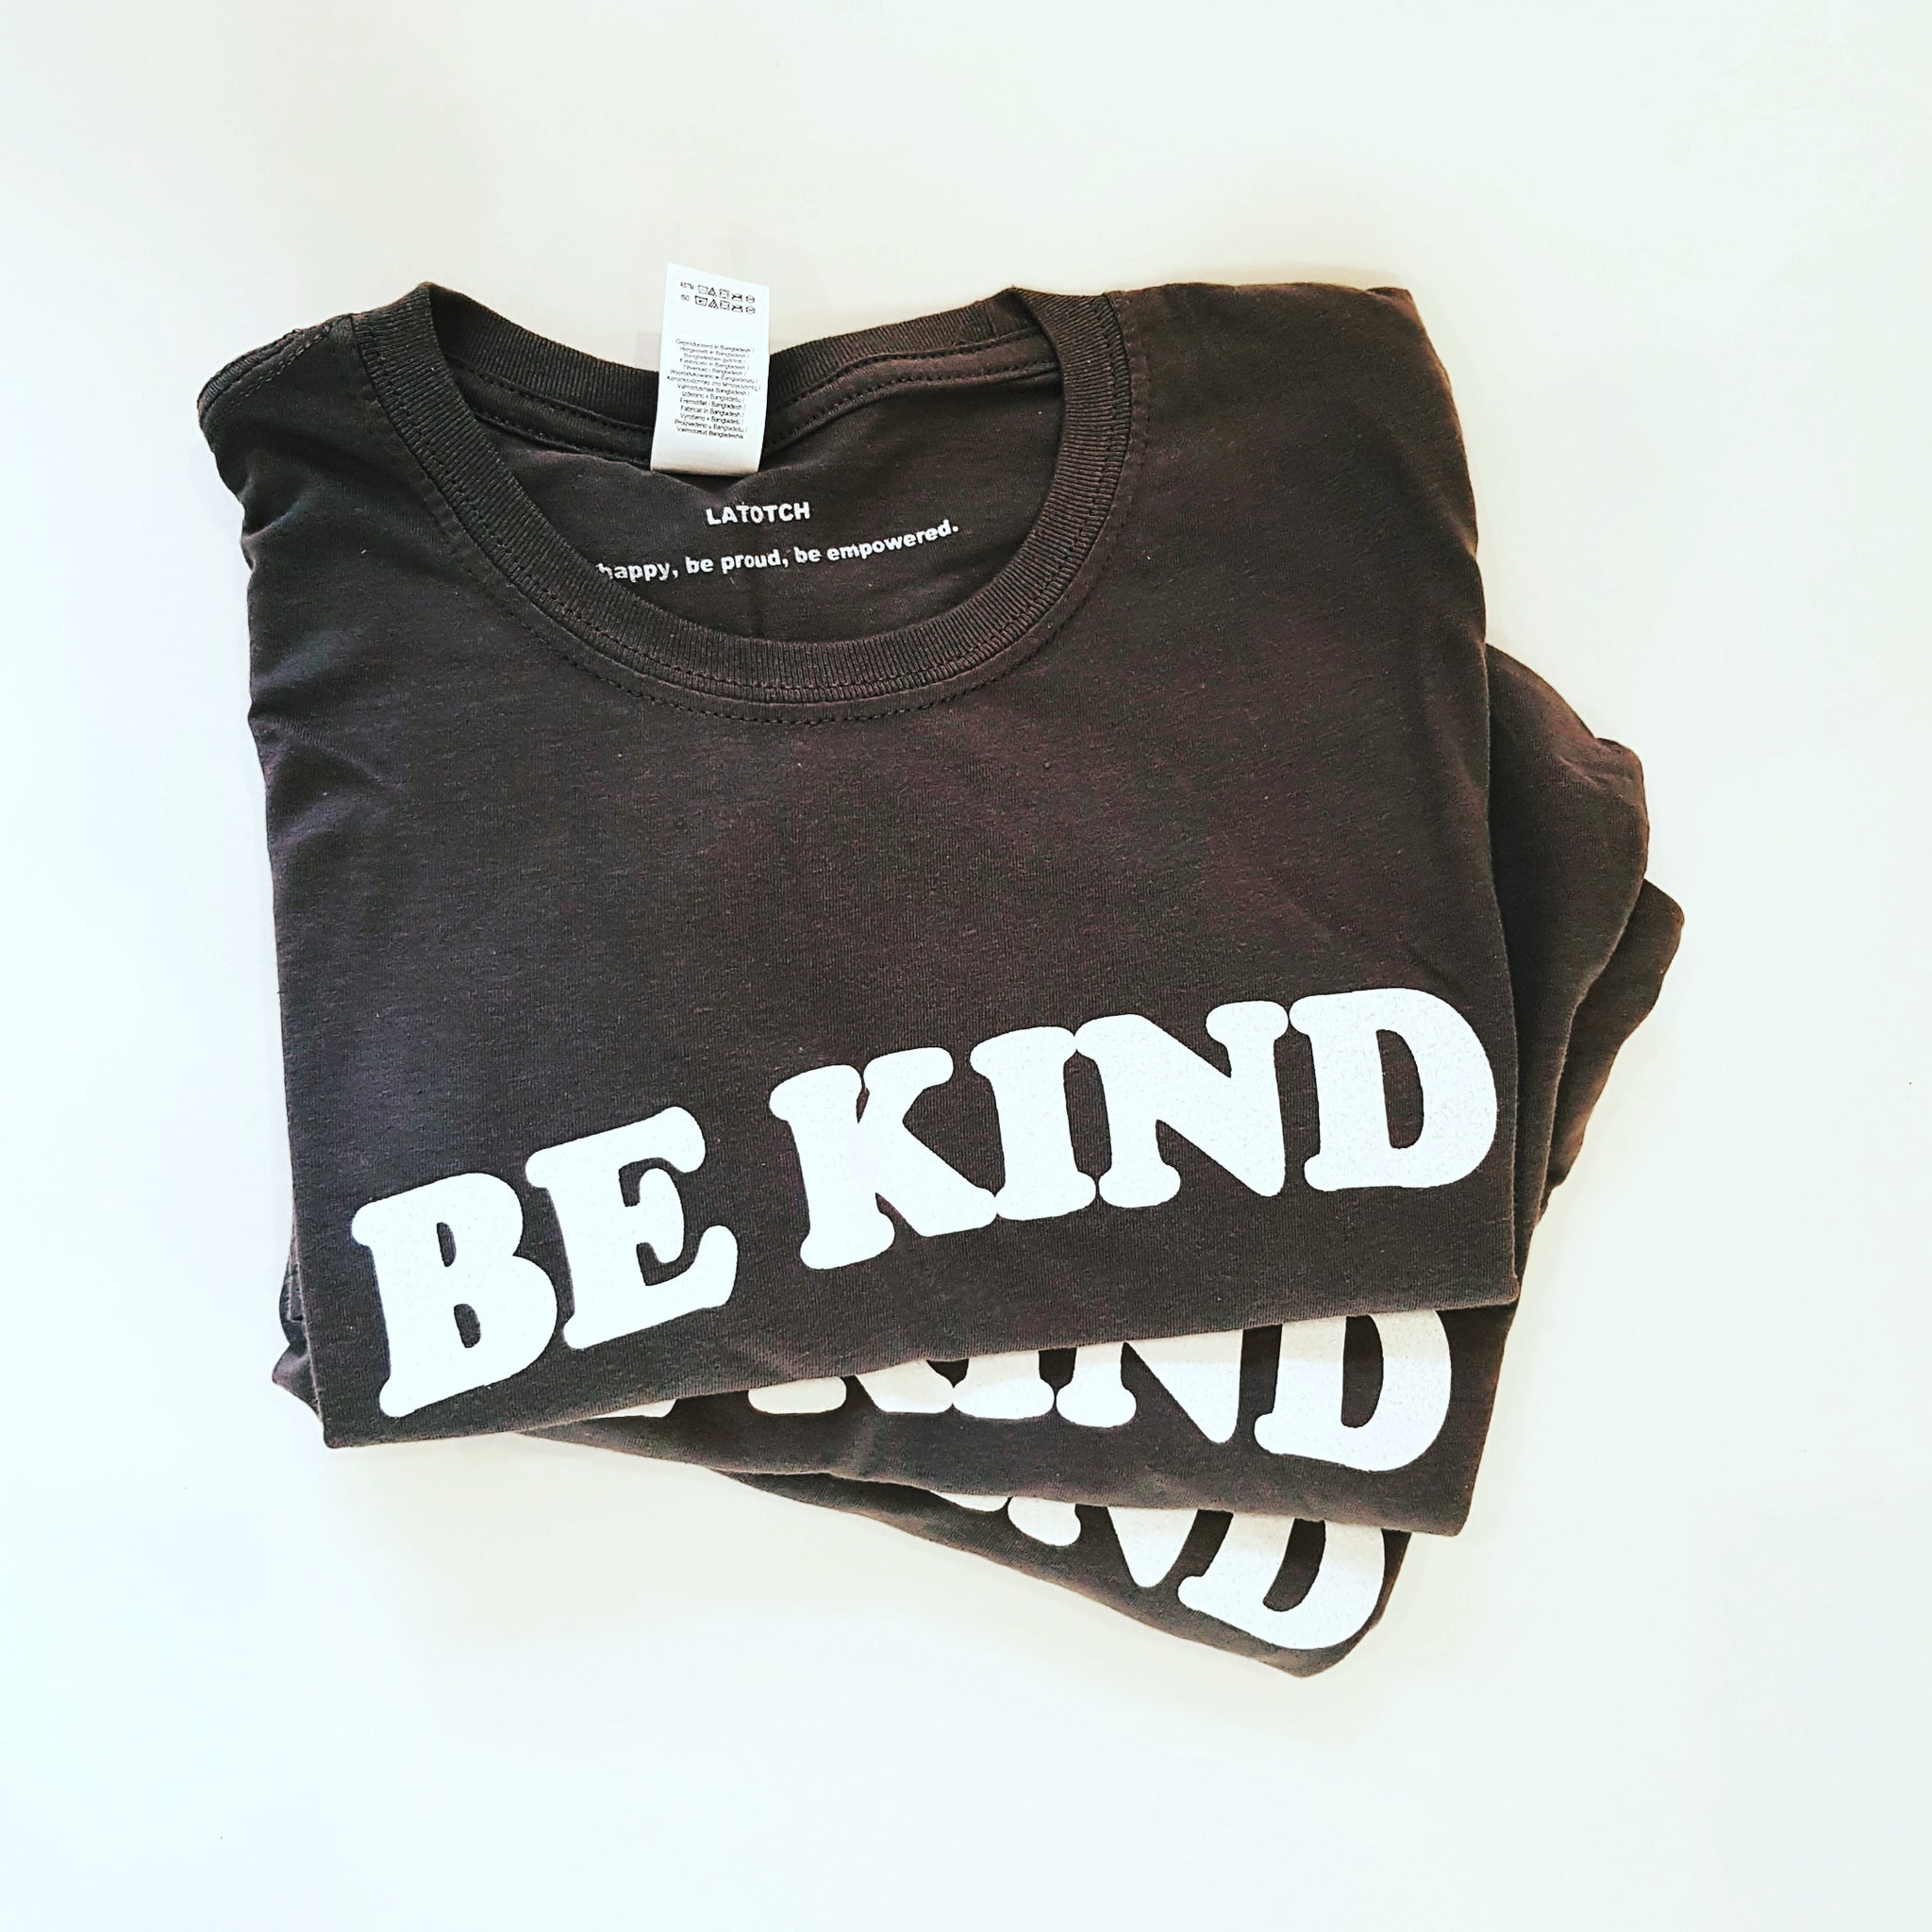 Be kind and dream (grey)